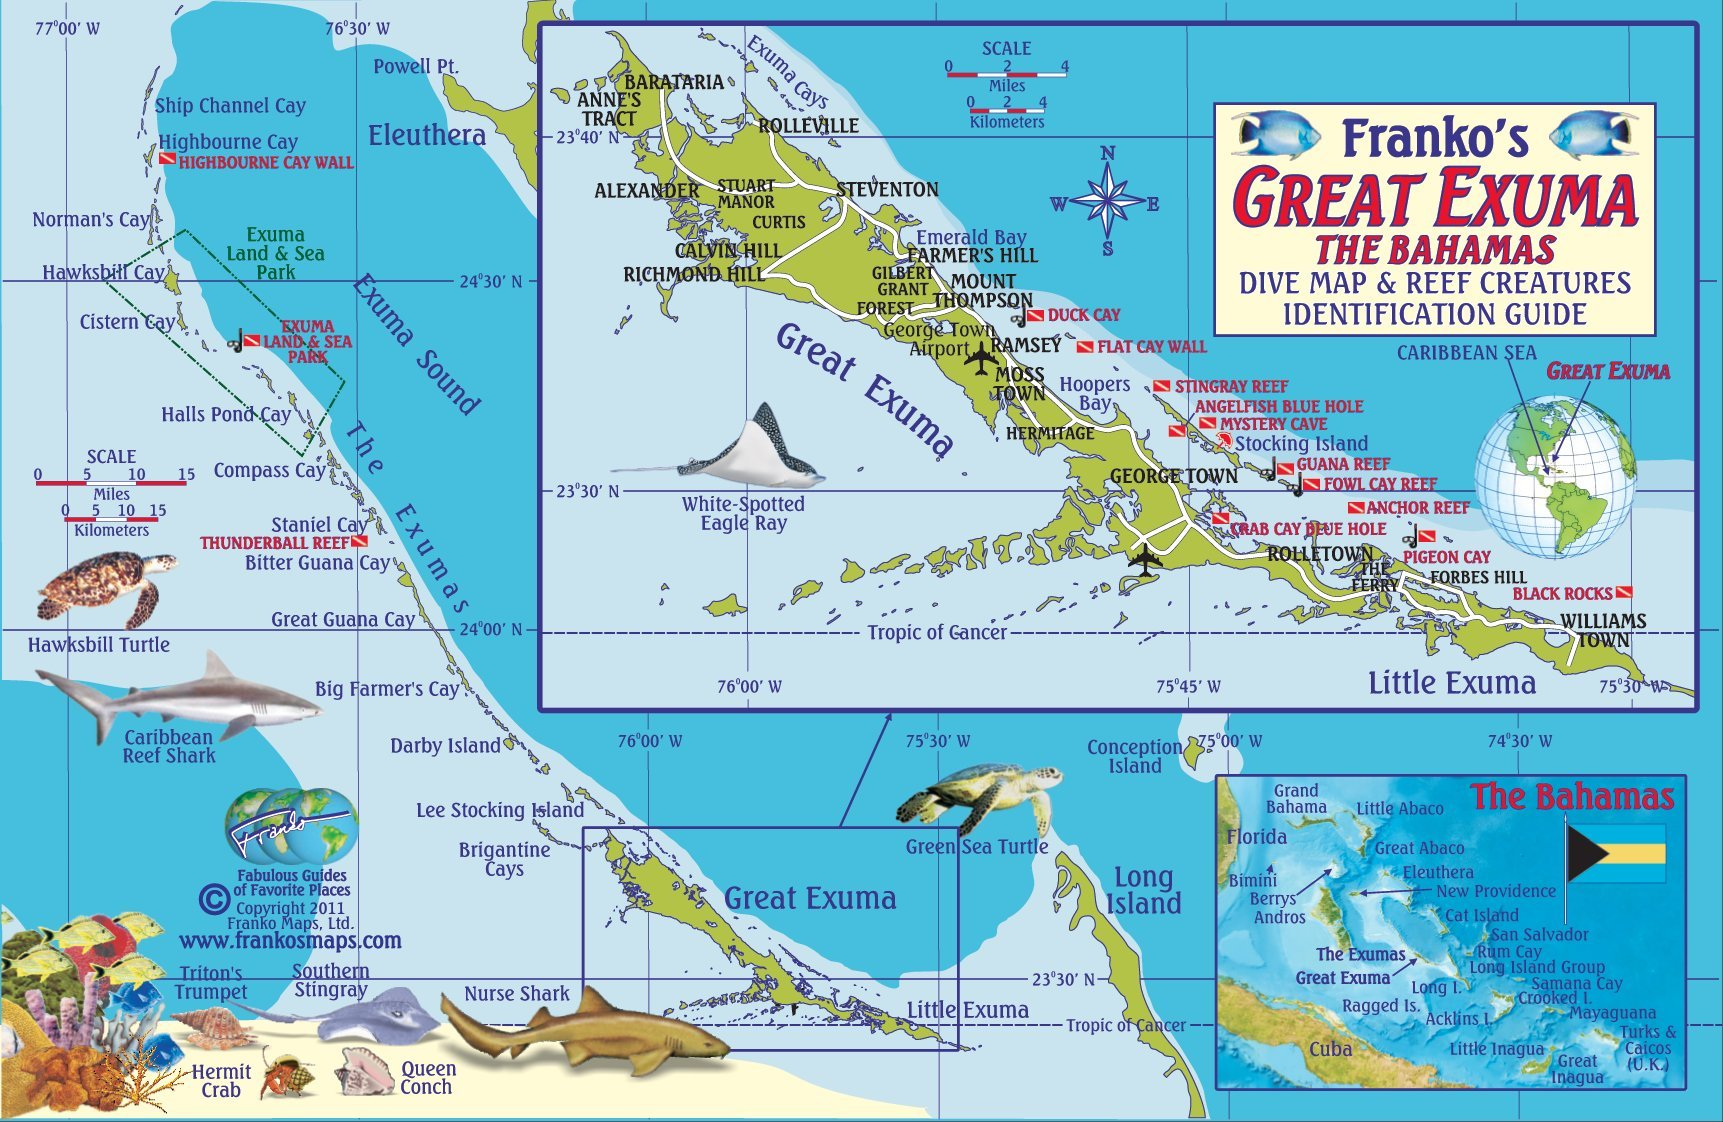 great exuma bahamas dive map  reef creatures guide franko maps laminatedfish card franko maps ltd  amazoncom books. great exuma bahamas dive map  reef creatures guide franko maps